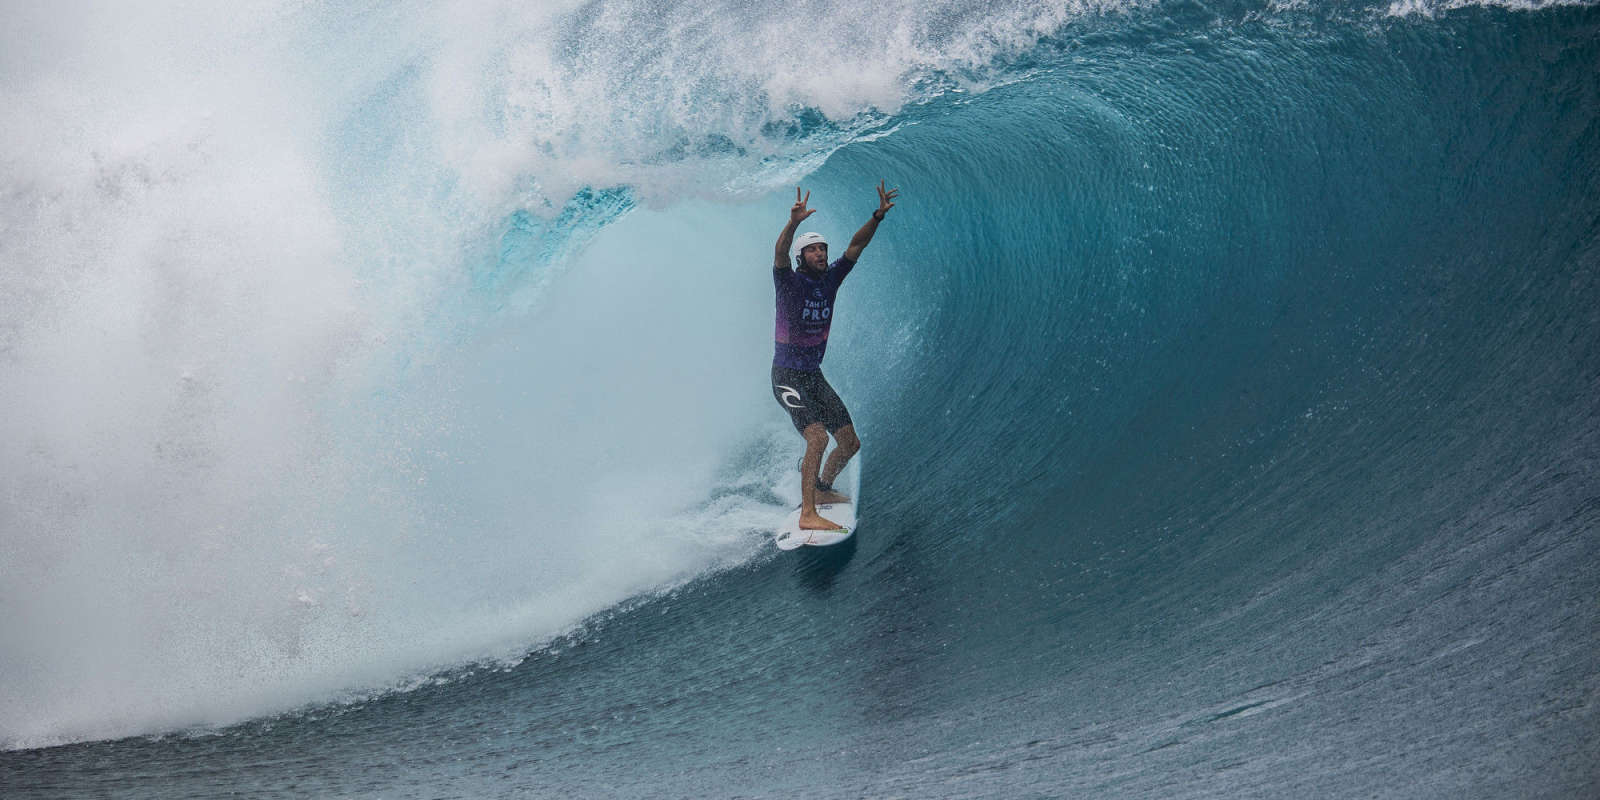 """A Monster Energy preview of the 2019 Tahiti Pro Teahupo'o   Shakespeare taught us that a rose by any other name would smell as sweet. Just like no matter how you pronounce the wave at The End Of The Road in Tahiti — """"Tcho-poo"""", """"Tcho-poh-oh"""" or """"Tay-a-ho-"""